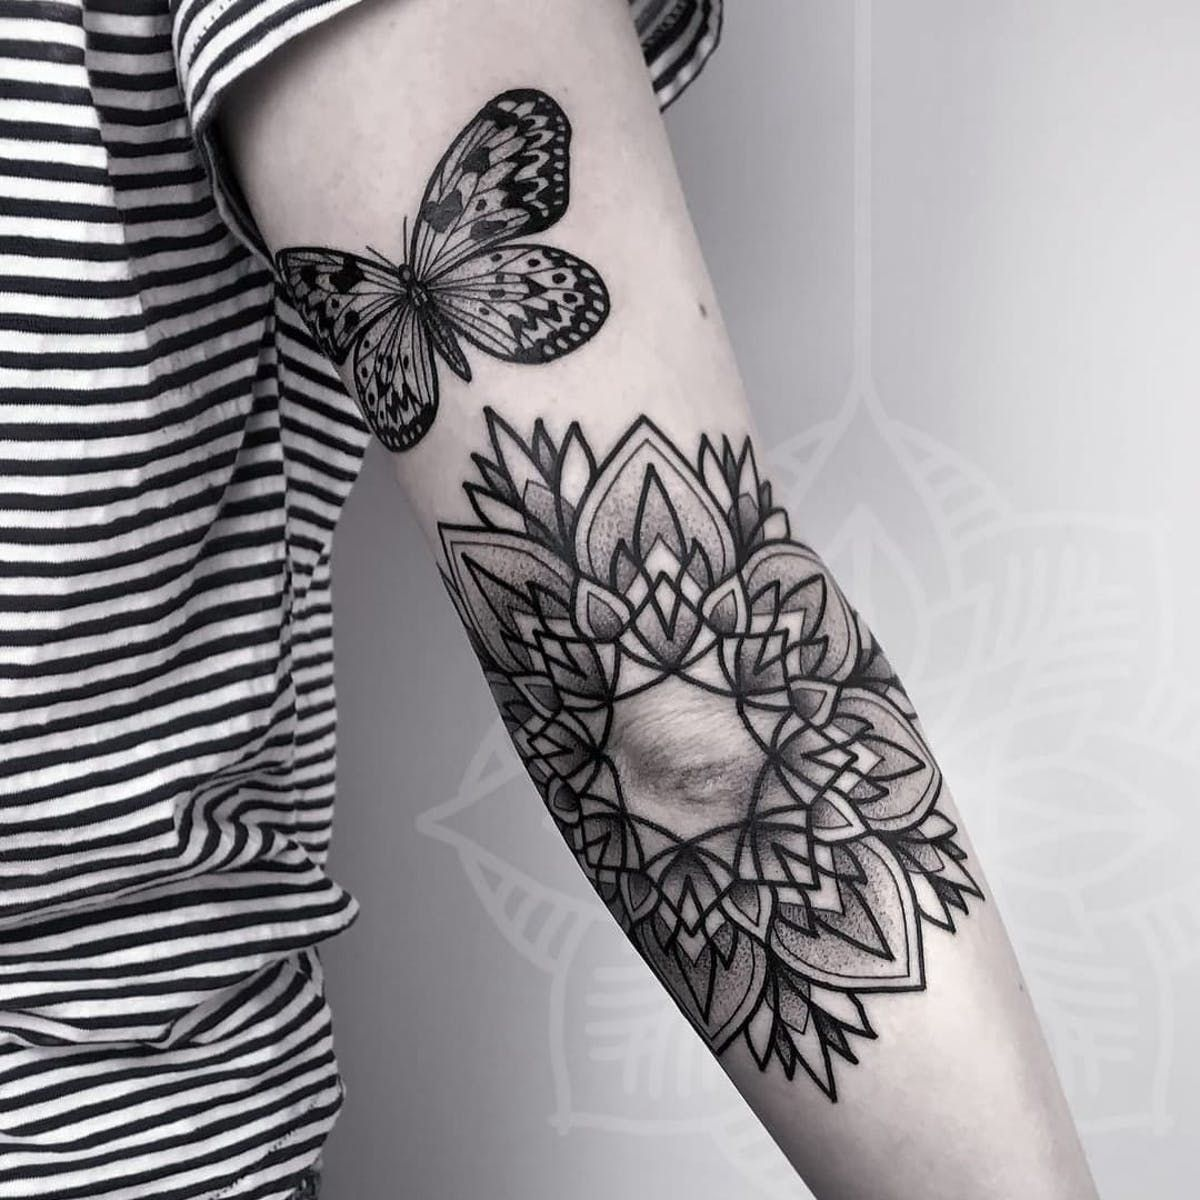 Beautiful And Meaningful Butterfly Tattoo Guide In 2020 Butterfly Tattoo Butterfly Tattoo Designs Butterfly Tattoos For Women